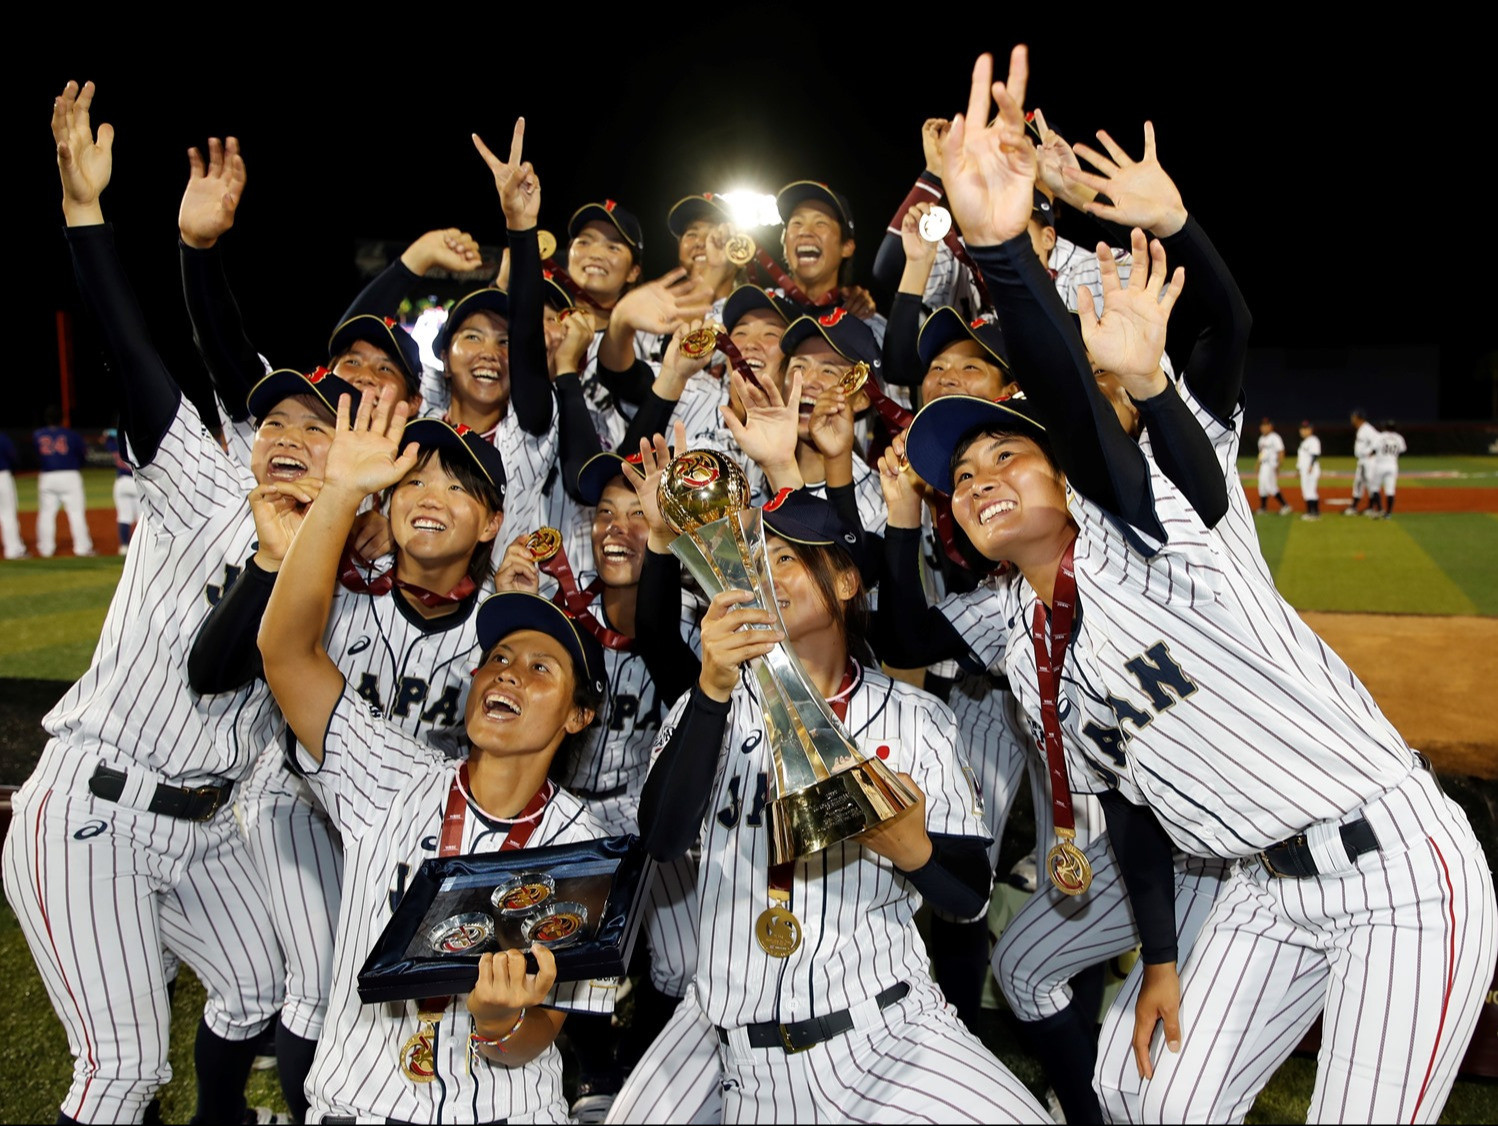 Women's Baseball World Cup now set for Tijuana in November